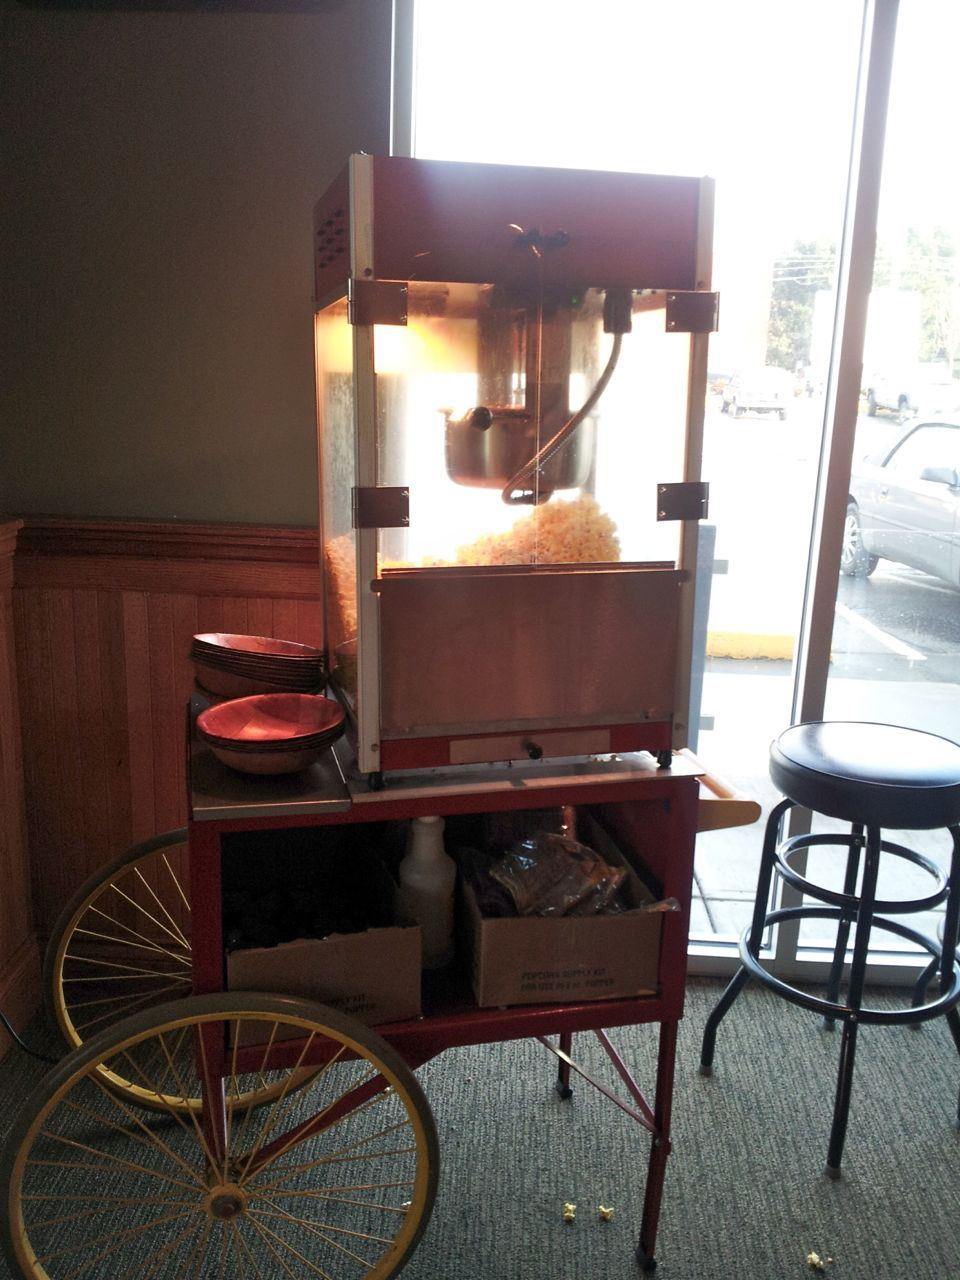 popcorn maker at Pioneer's Pub